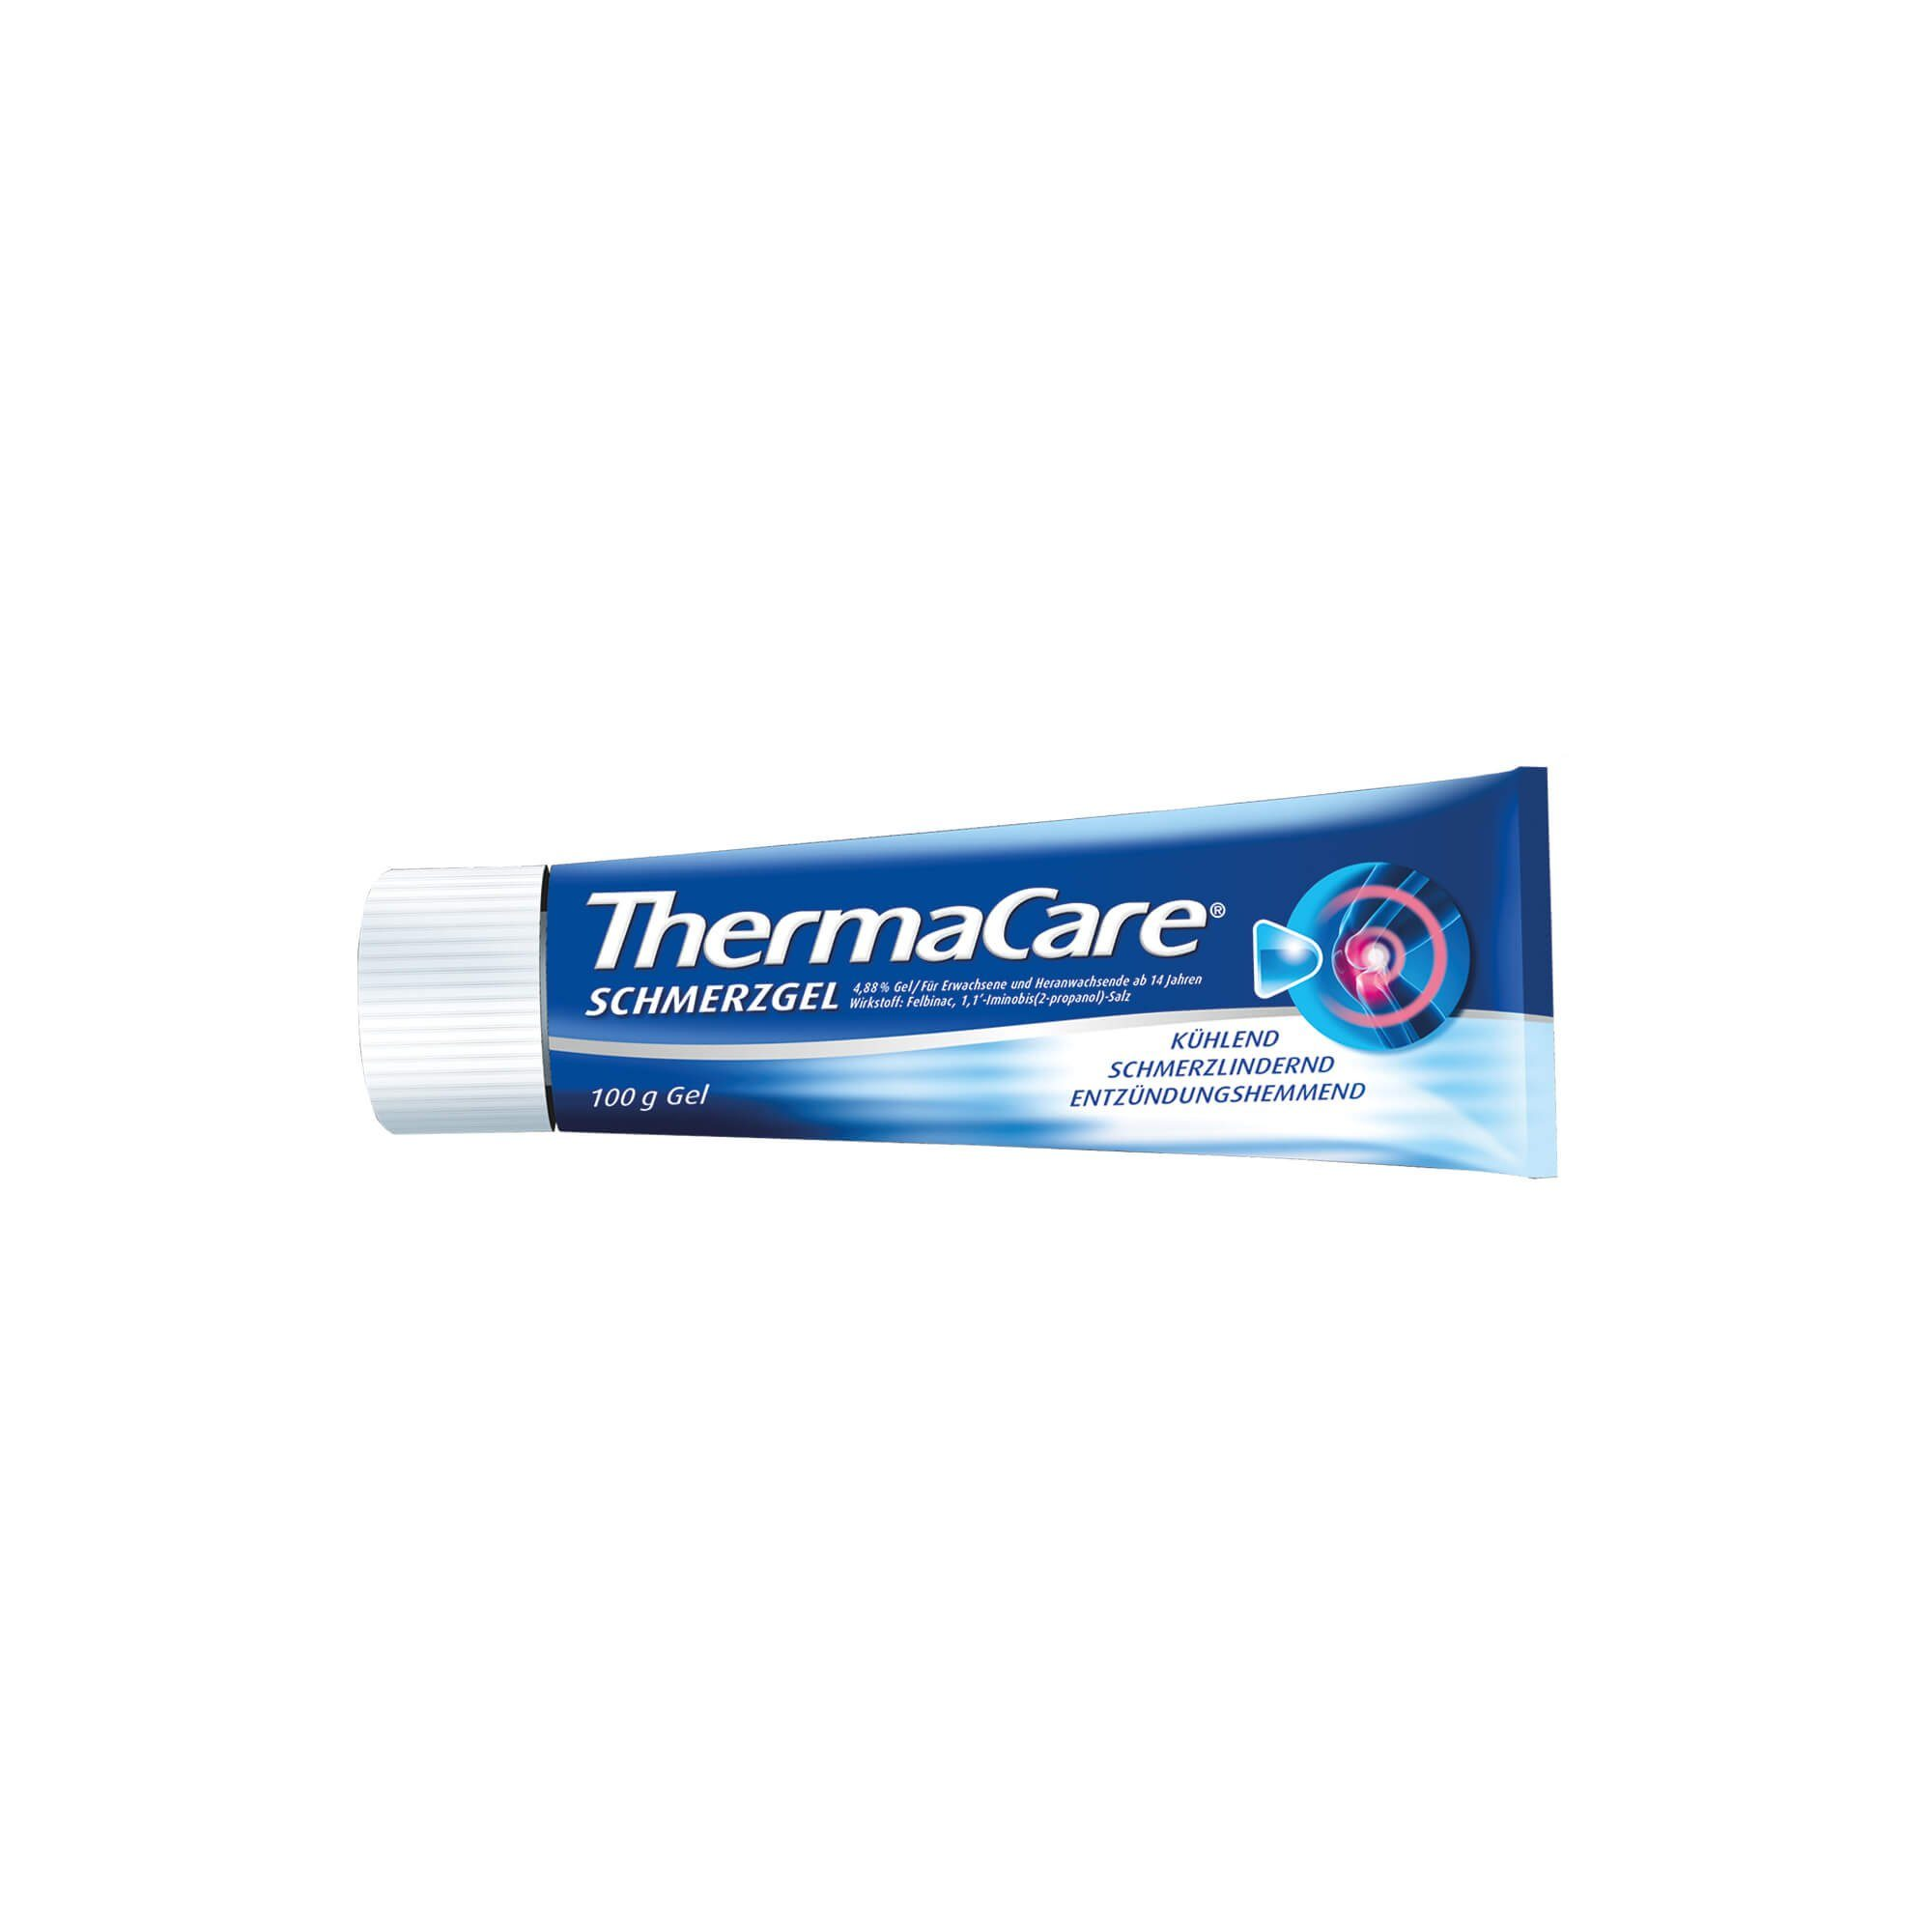 Thermacare ThermaCare Schmerzgel , 100 g